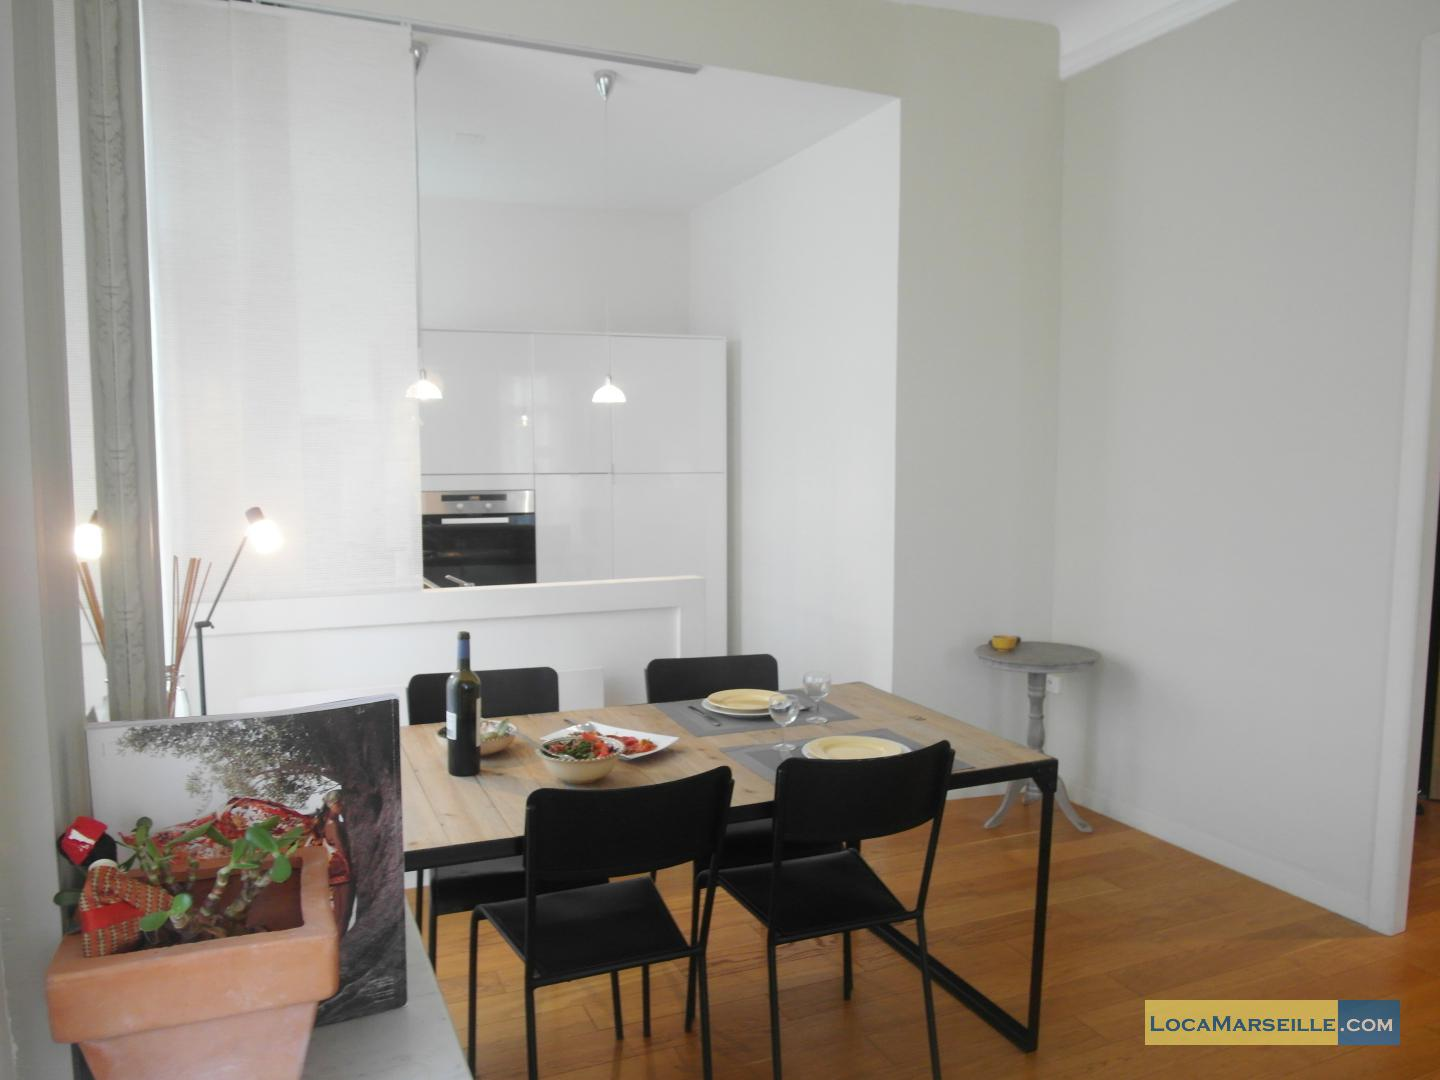 Location meubl e marseille appartement type t2 carrousel for Salle a manger 1920